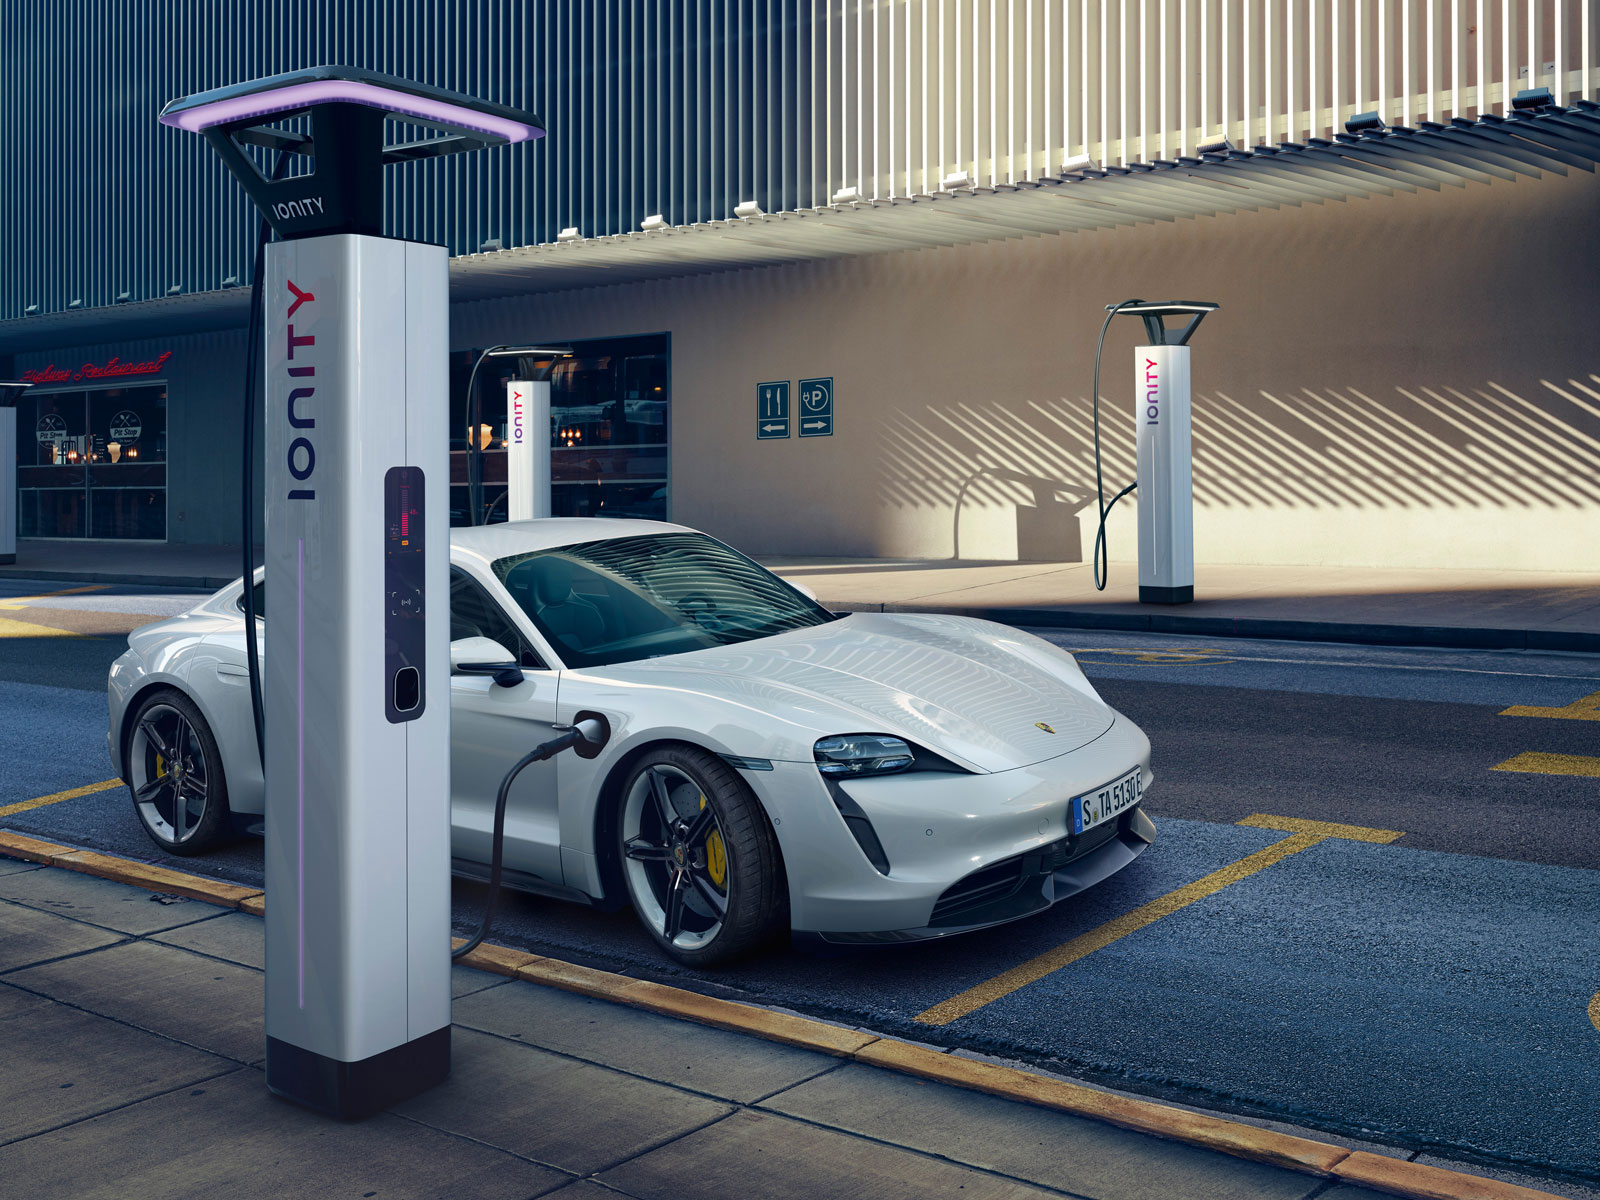 Porsche Taycan All-Electric Car